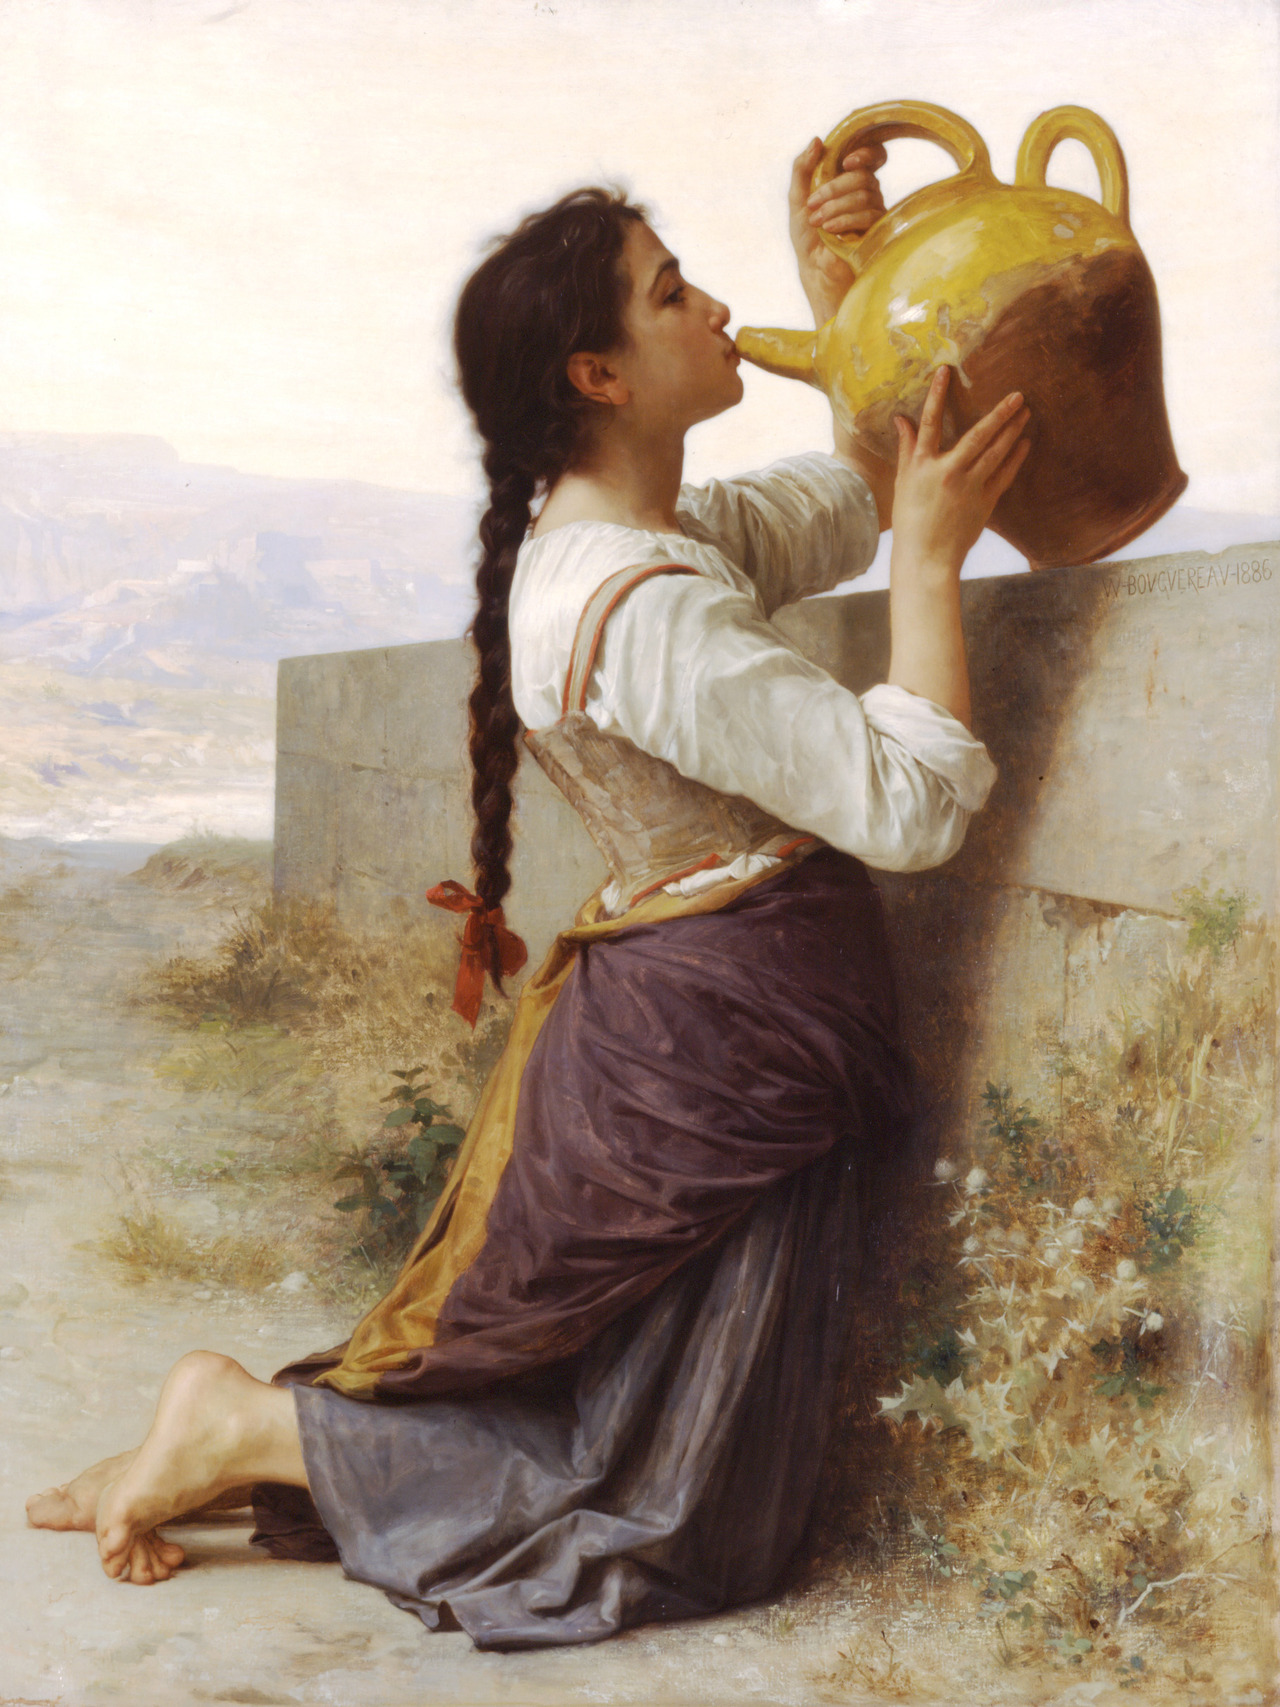 velvetthunder:  Thirst - Aldophe William Bouguereau, 1886